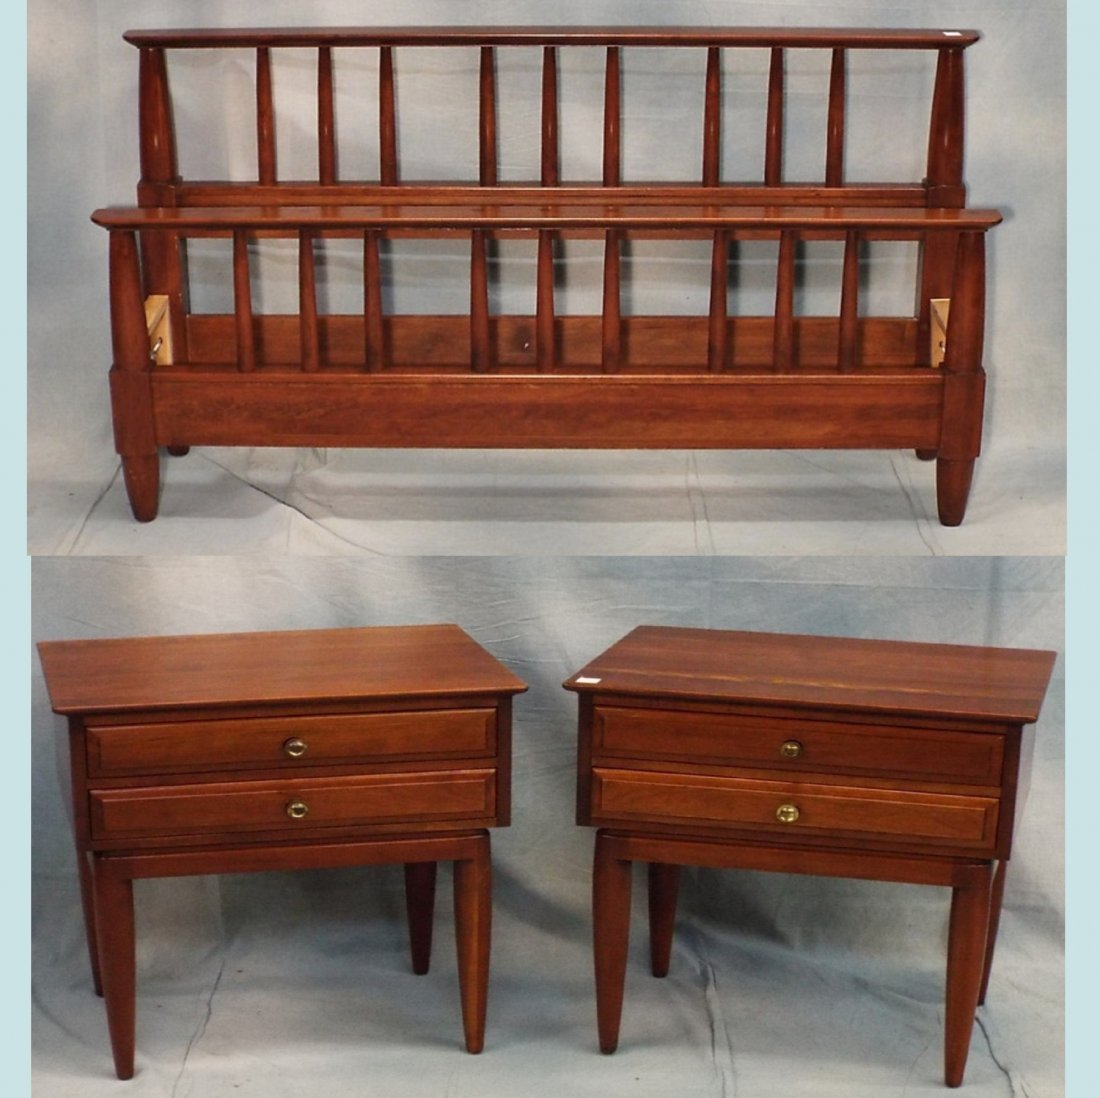 Pr. Willett Bed Side Tables & Queen Size Bed w/ Rails